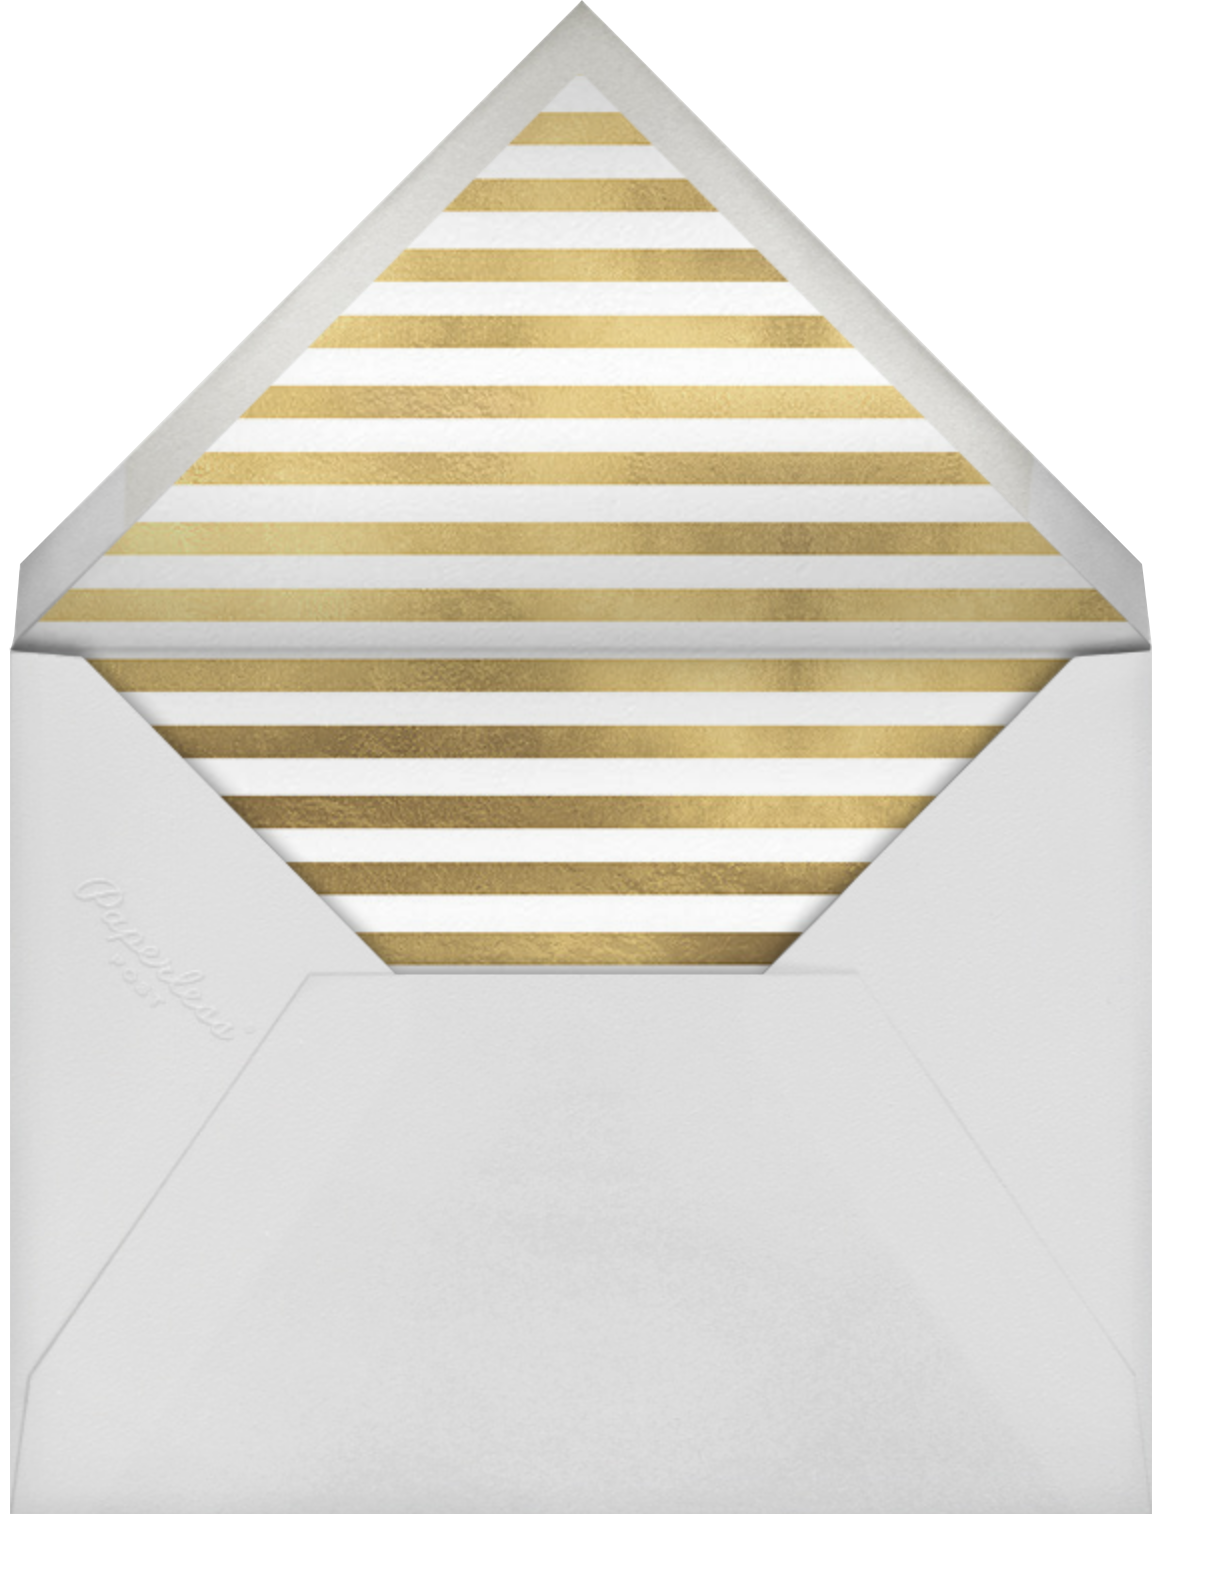 A Golden Date - White/Gold - kate spade new york - Party save the dates - envelope back